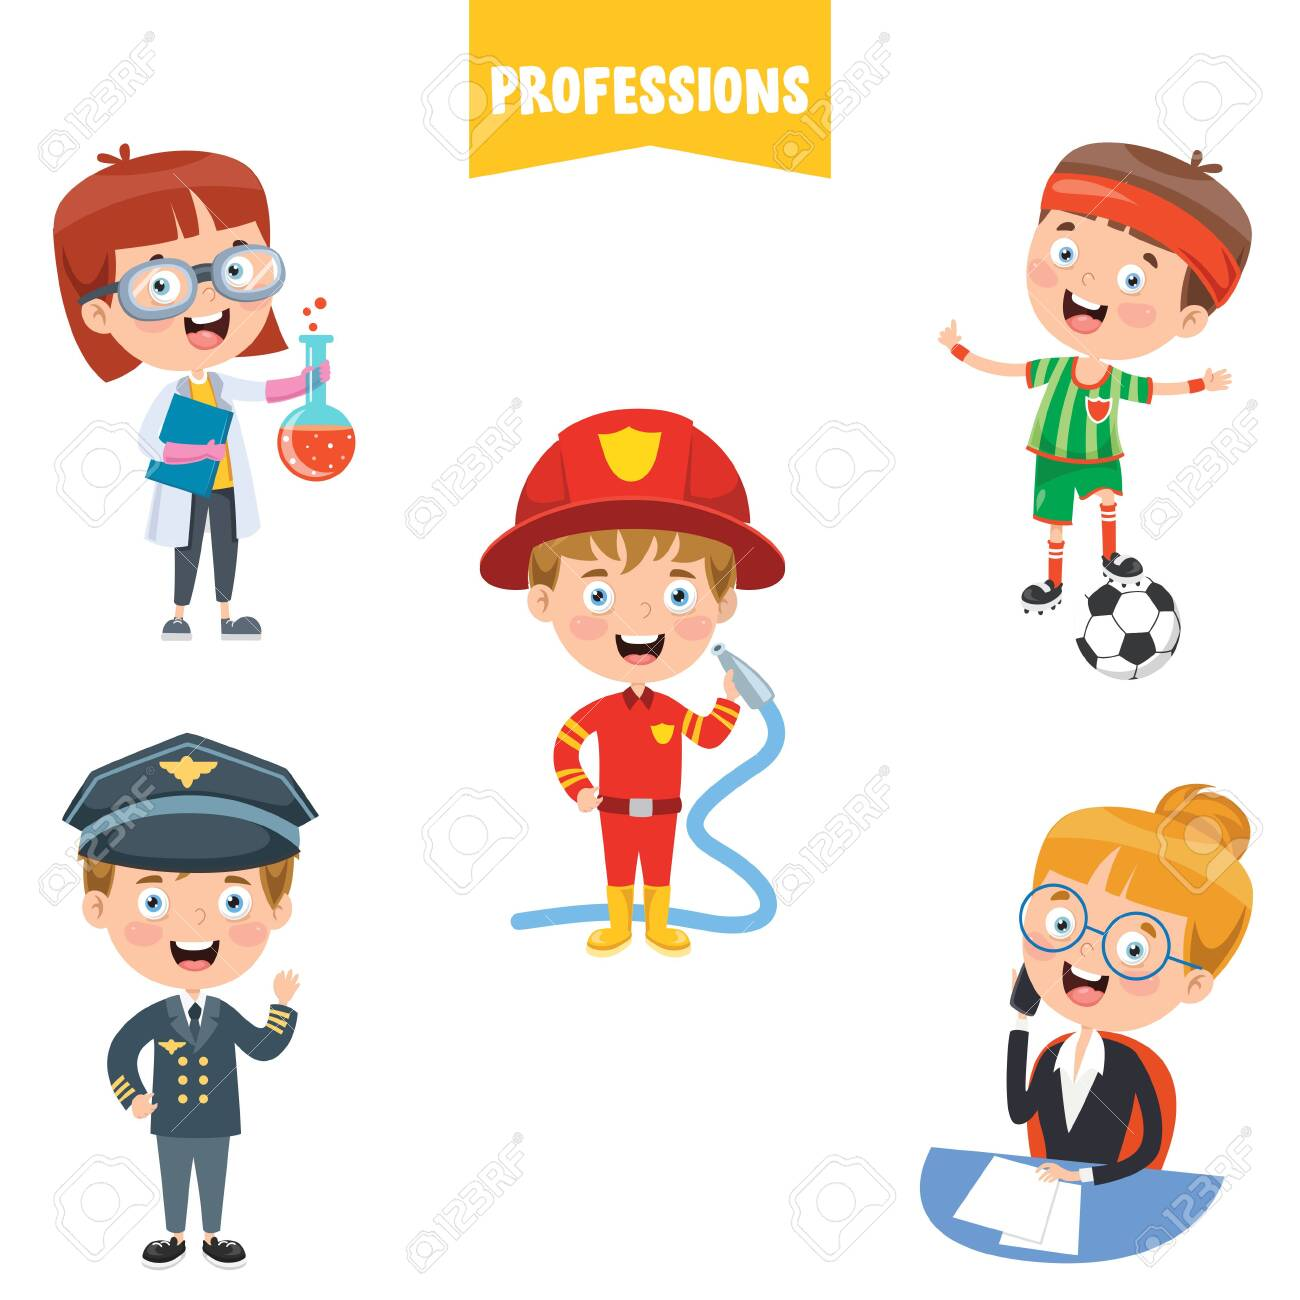 Cartoon Characters Of Different Professions - 140077998